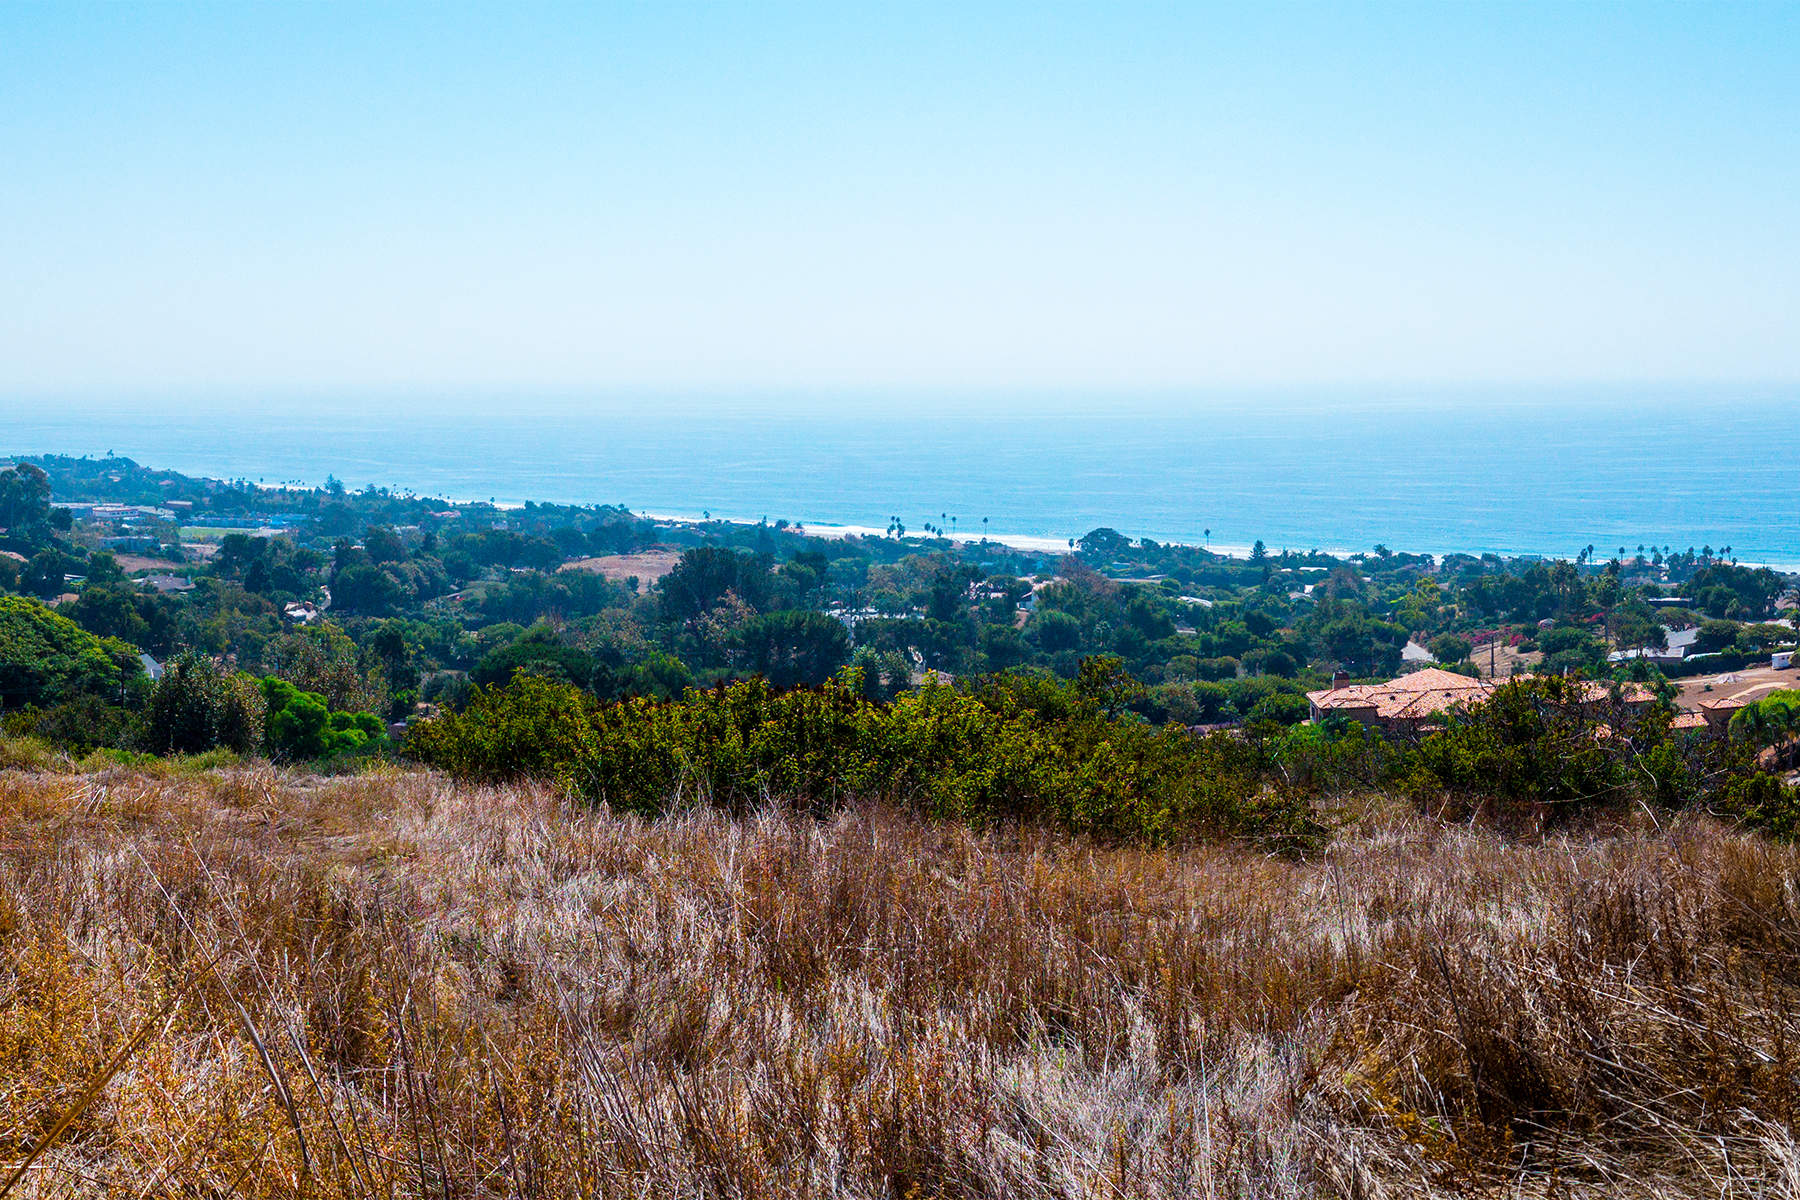 Land for Sale at BeautifulSeaView.com 1 Sea View Drive, Malibu, California, 90265 United States